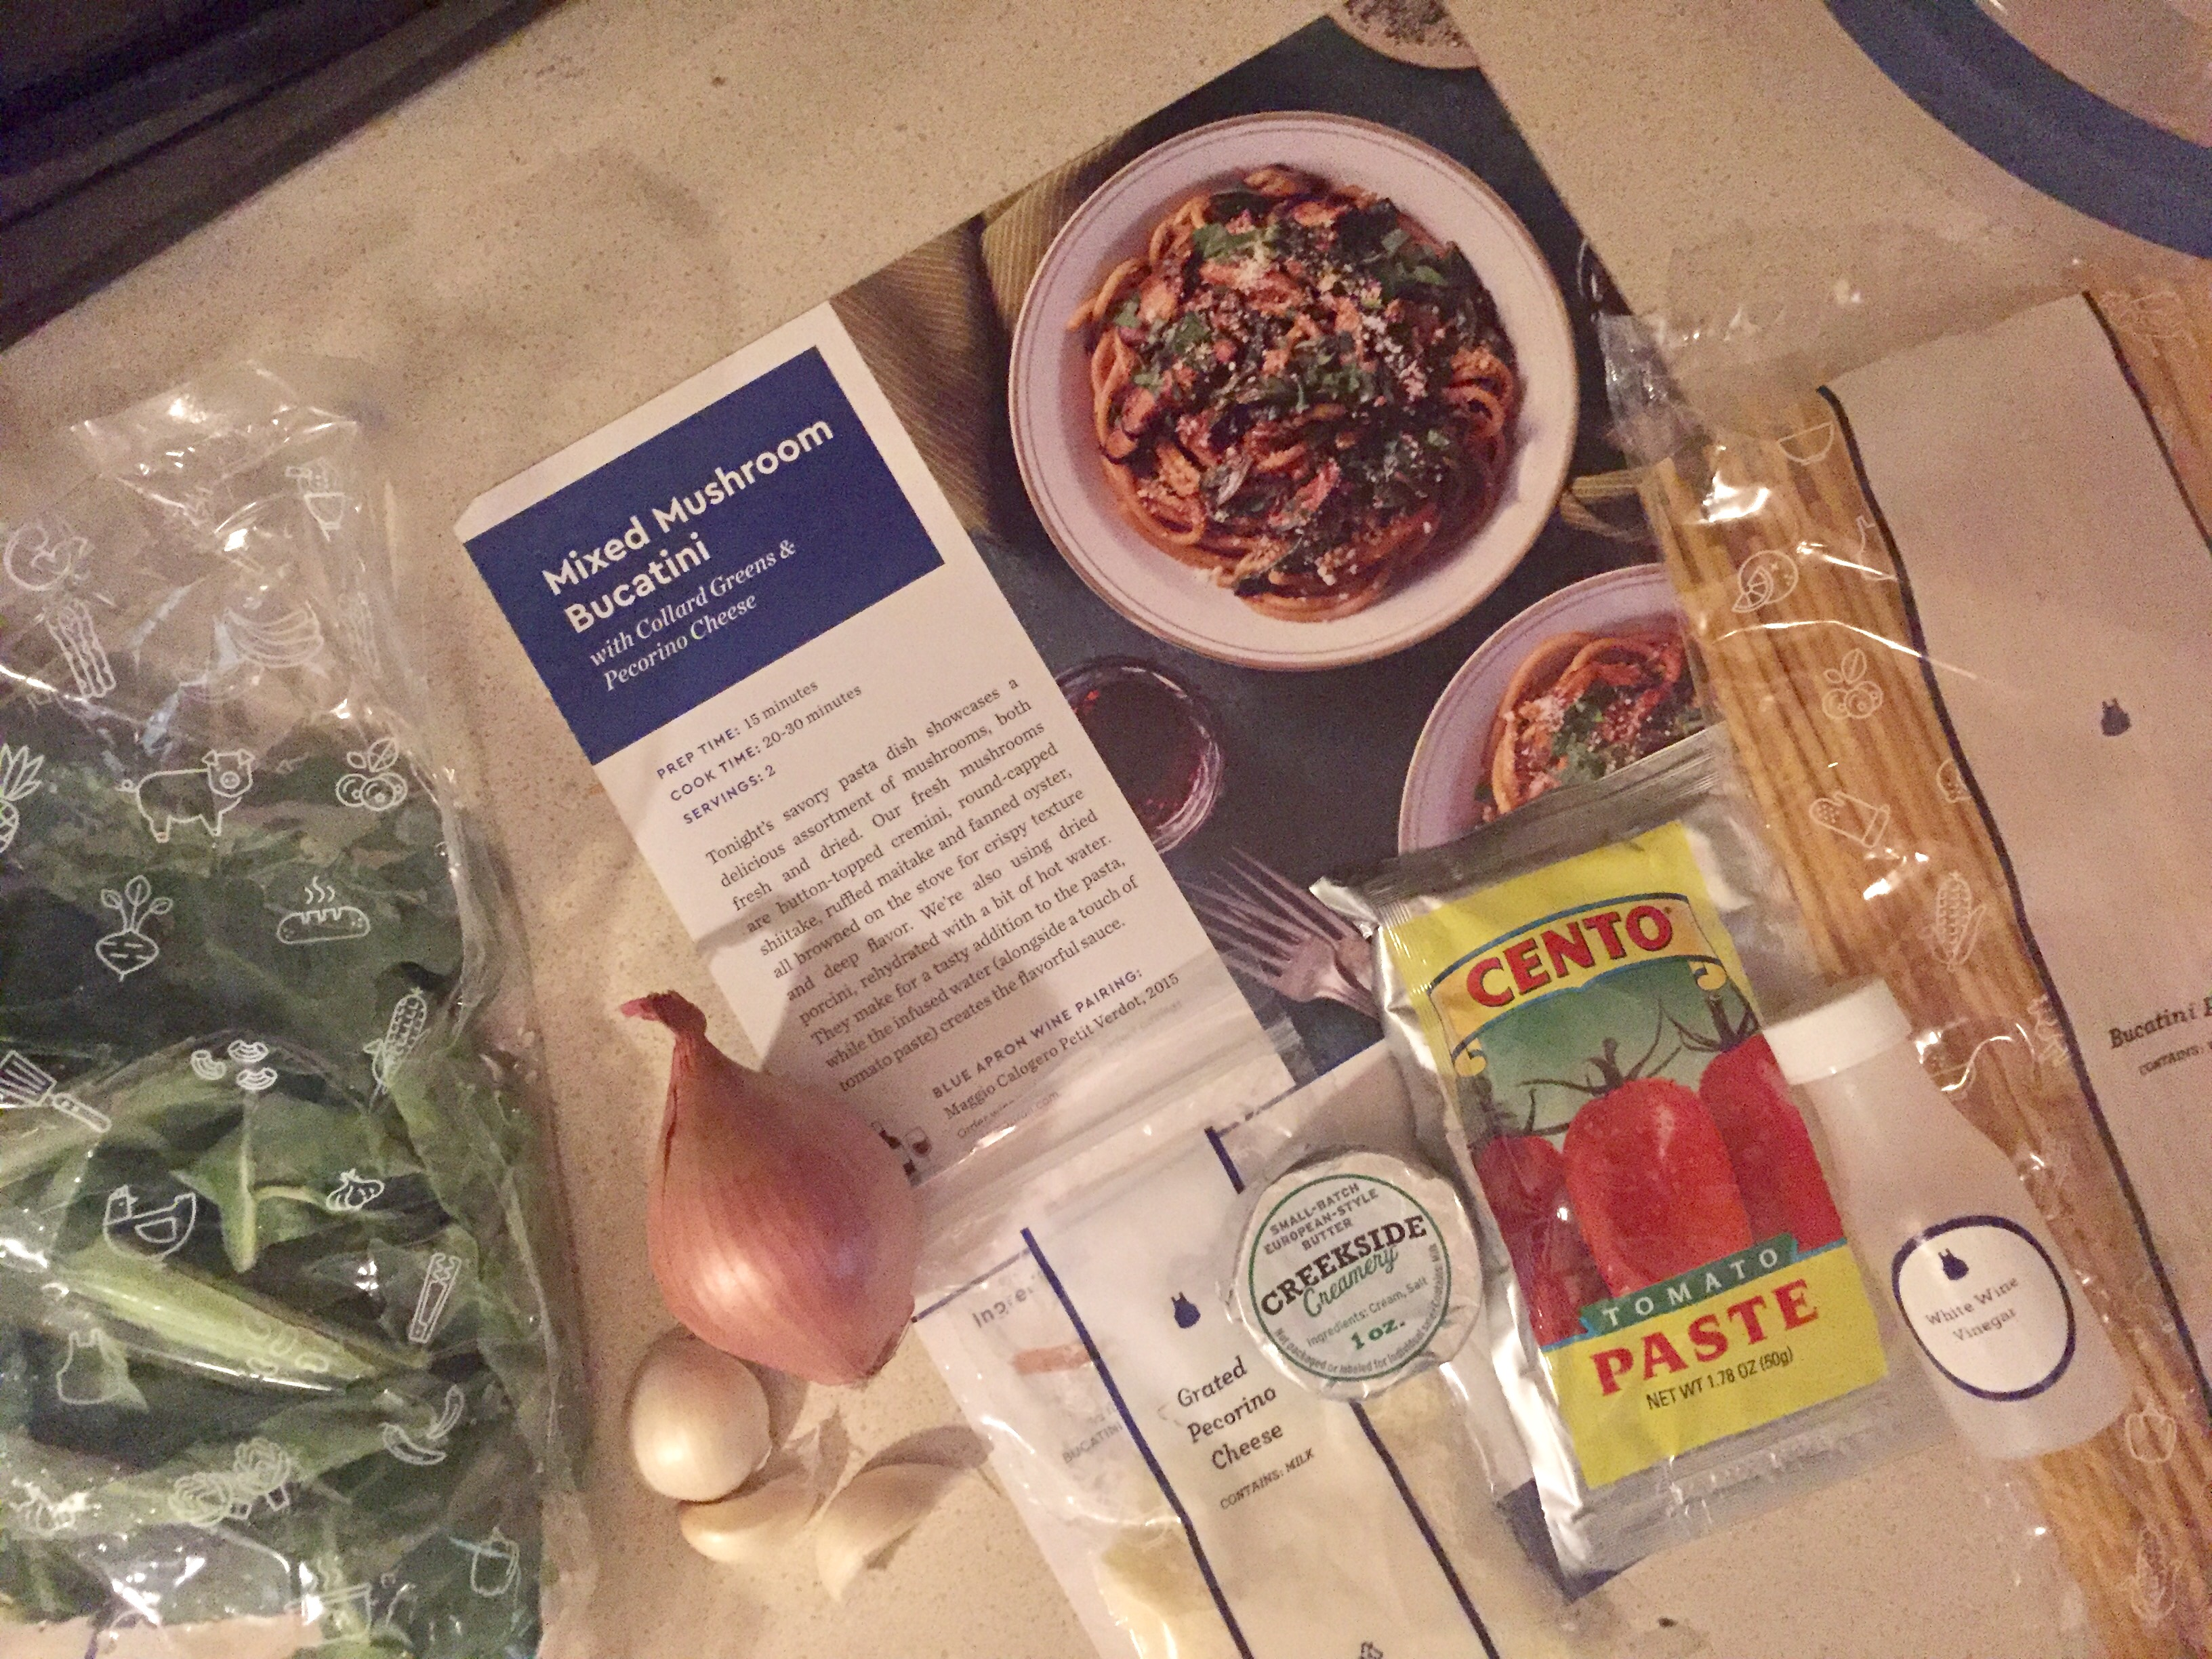 Blue apron bucatini - First Of All I Hate Mushrooms They Are Gross And Weird And I Am Stubborn About That The Boyfriend Feels The Same Way And I Thought If I Made It With